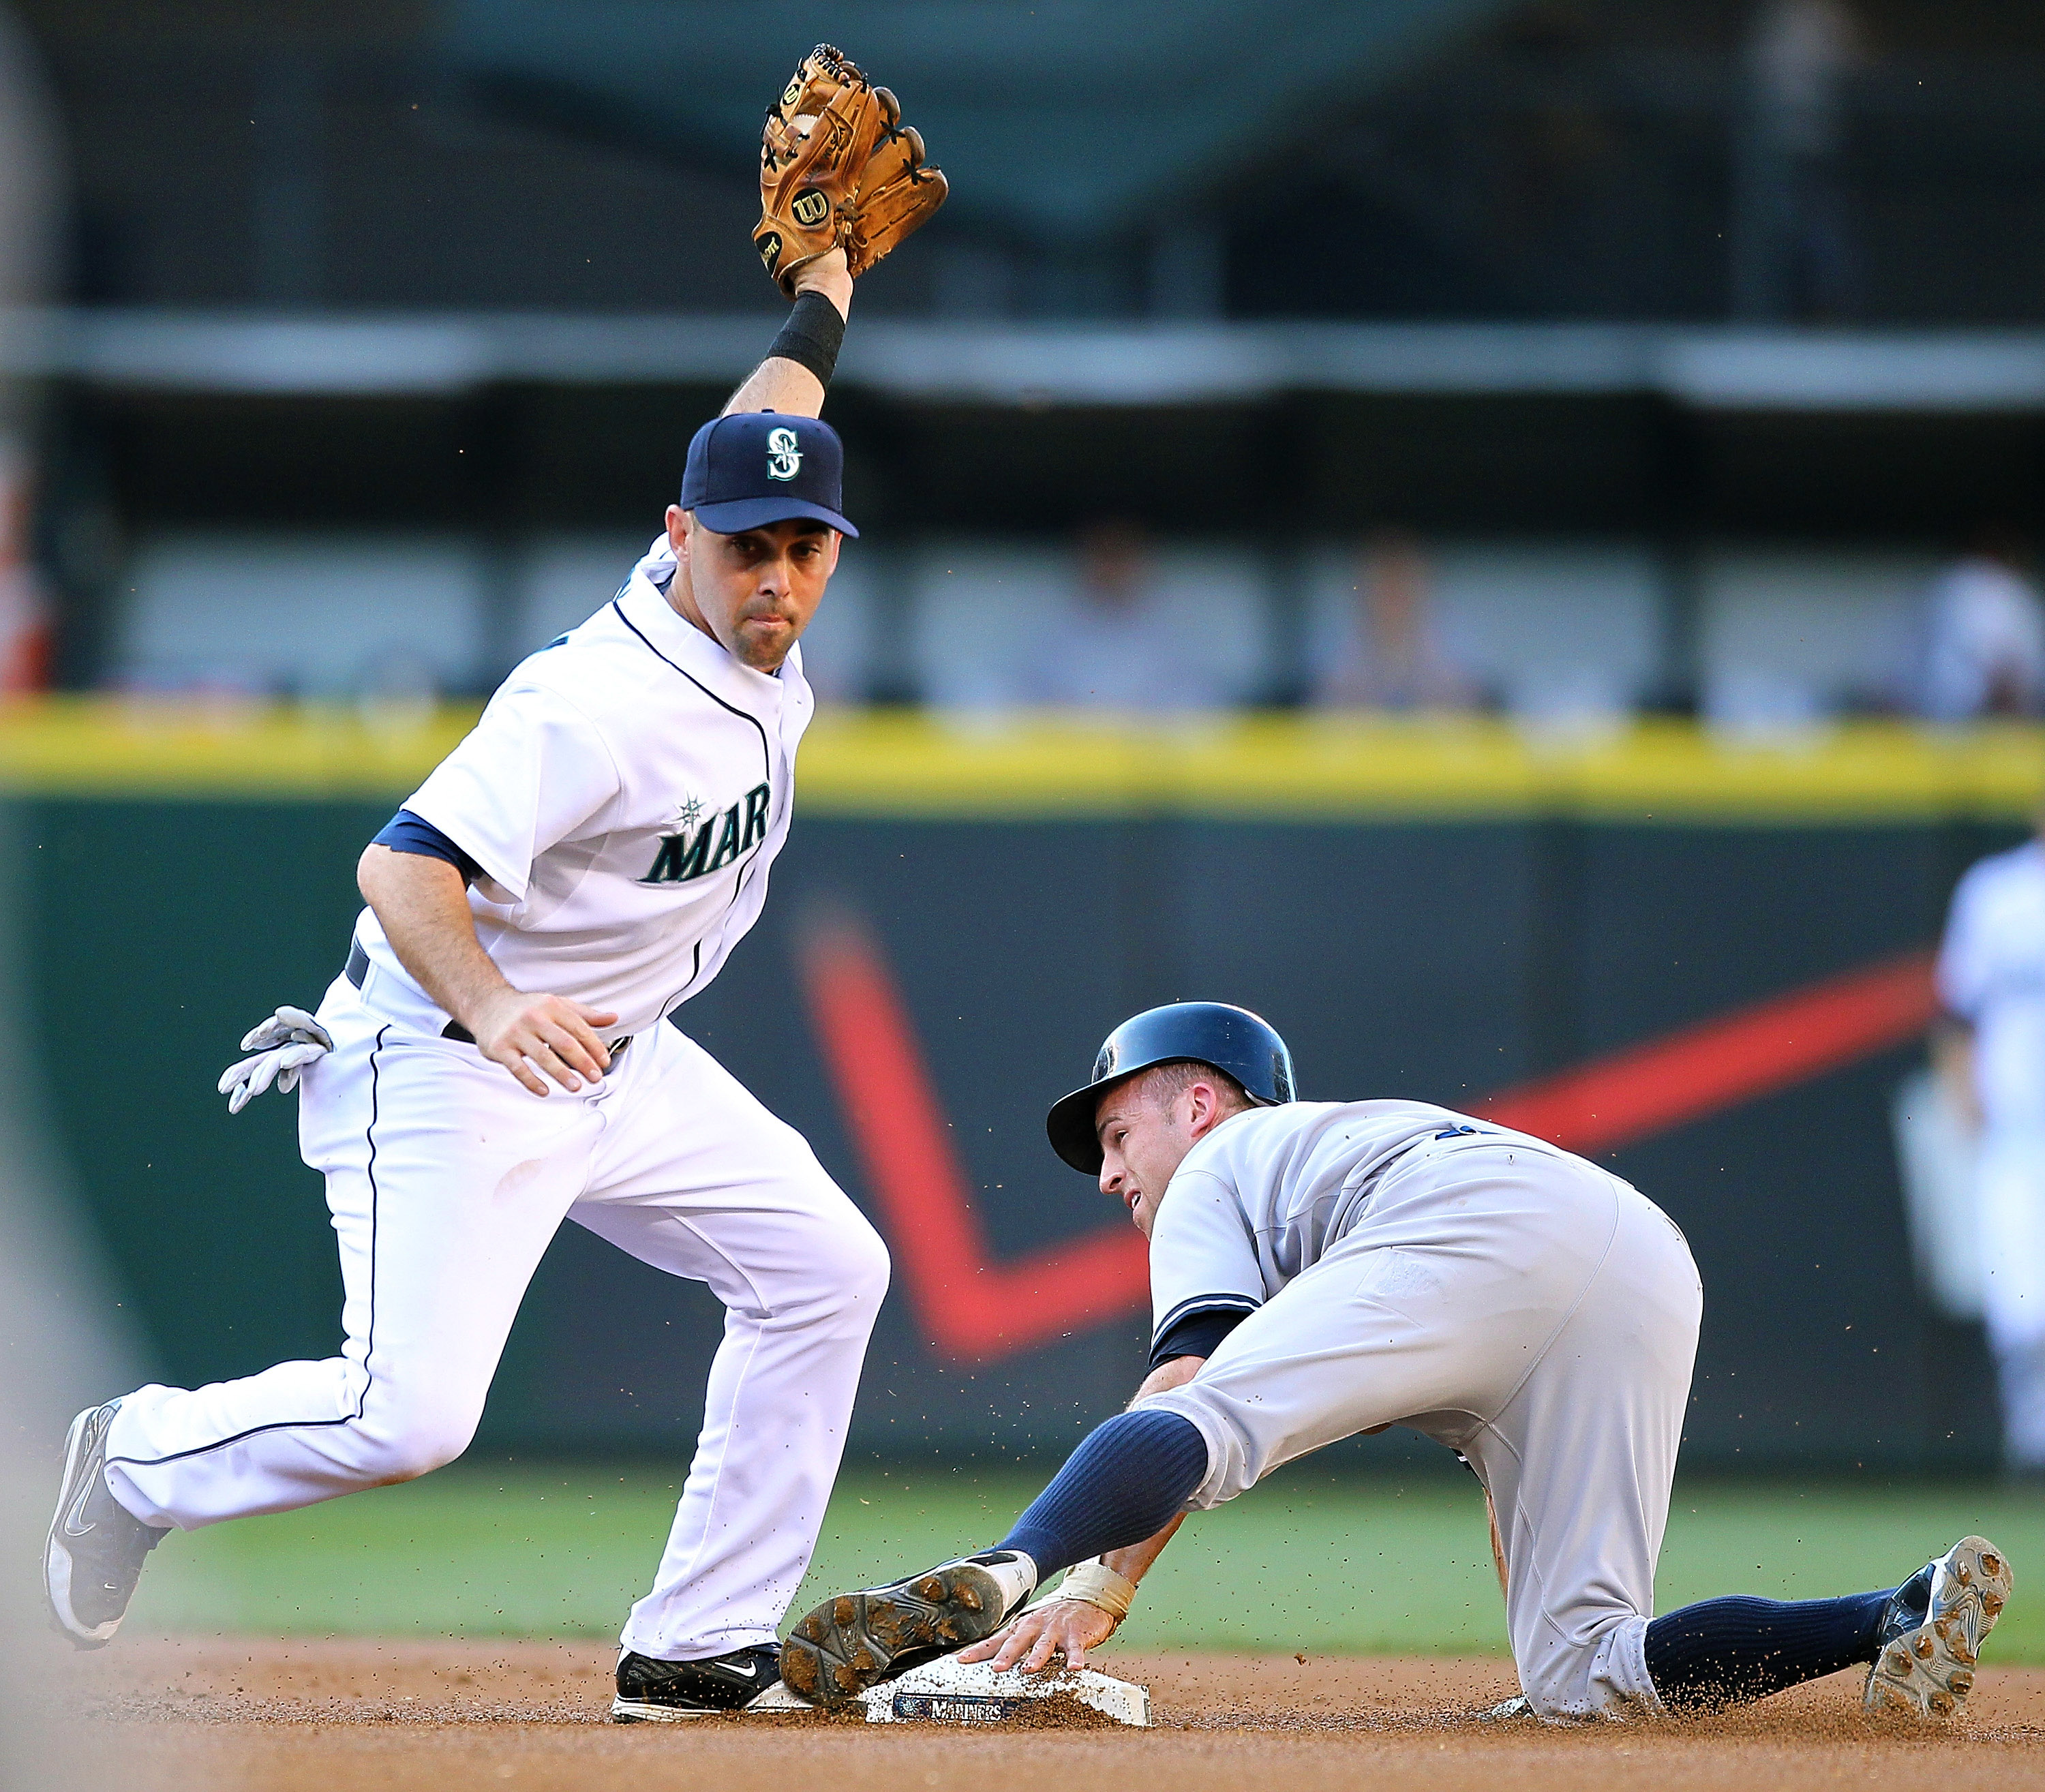 SEATTLE - JULY 10:  Brett Gardner #11 of the New York Yankees is tagged out at second base on a steal attempt by Jack Wilson #2 of the Seattle Mariners at Safeco Field on July 10, 2010 in Seattle, Washington. (Photo by Otto Greule Jr/Getty Images)